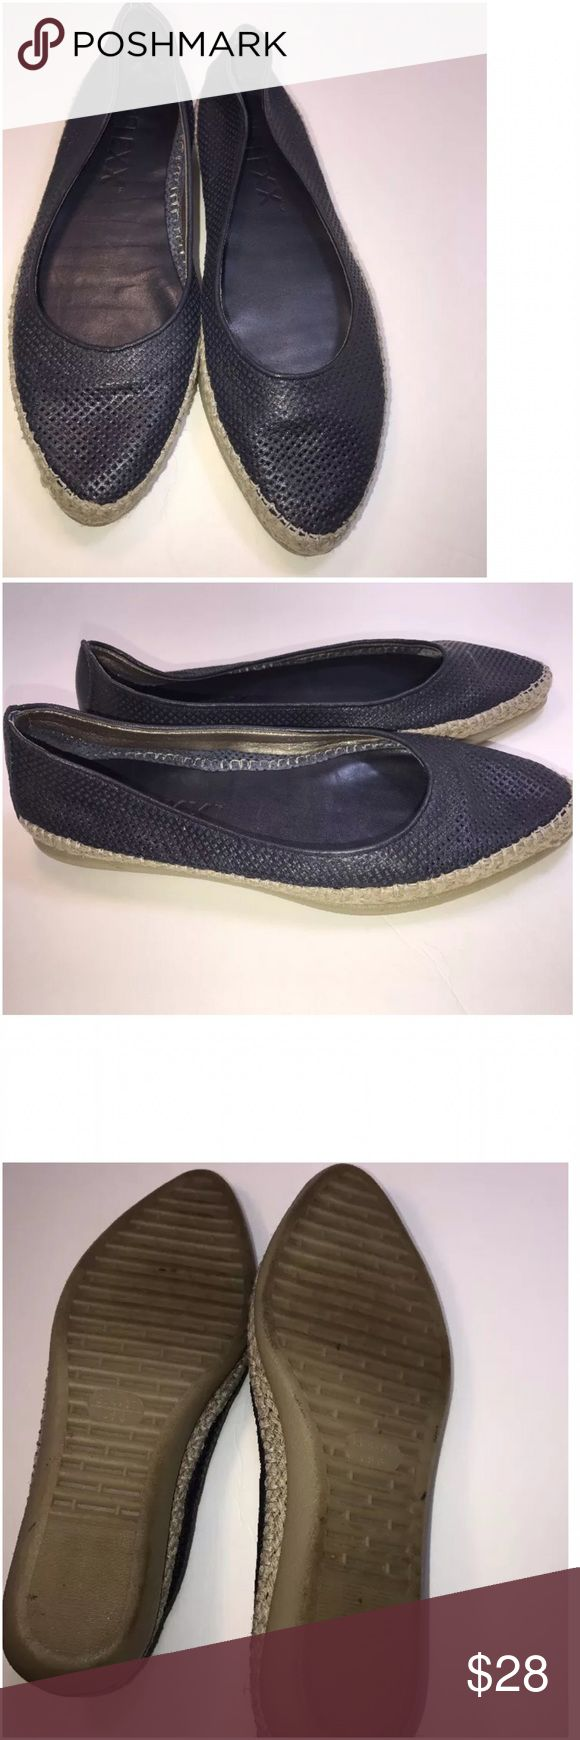 The Flexx Black Espadrille Casual Flats Sz 6 Listing if for a Women's The Flexx Black Espadrille Casual Flats US Size 6 (37).  They are in great condition with no flaws. The Flexx Shoes Espadrilles